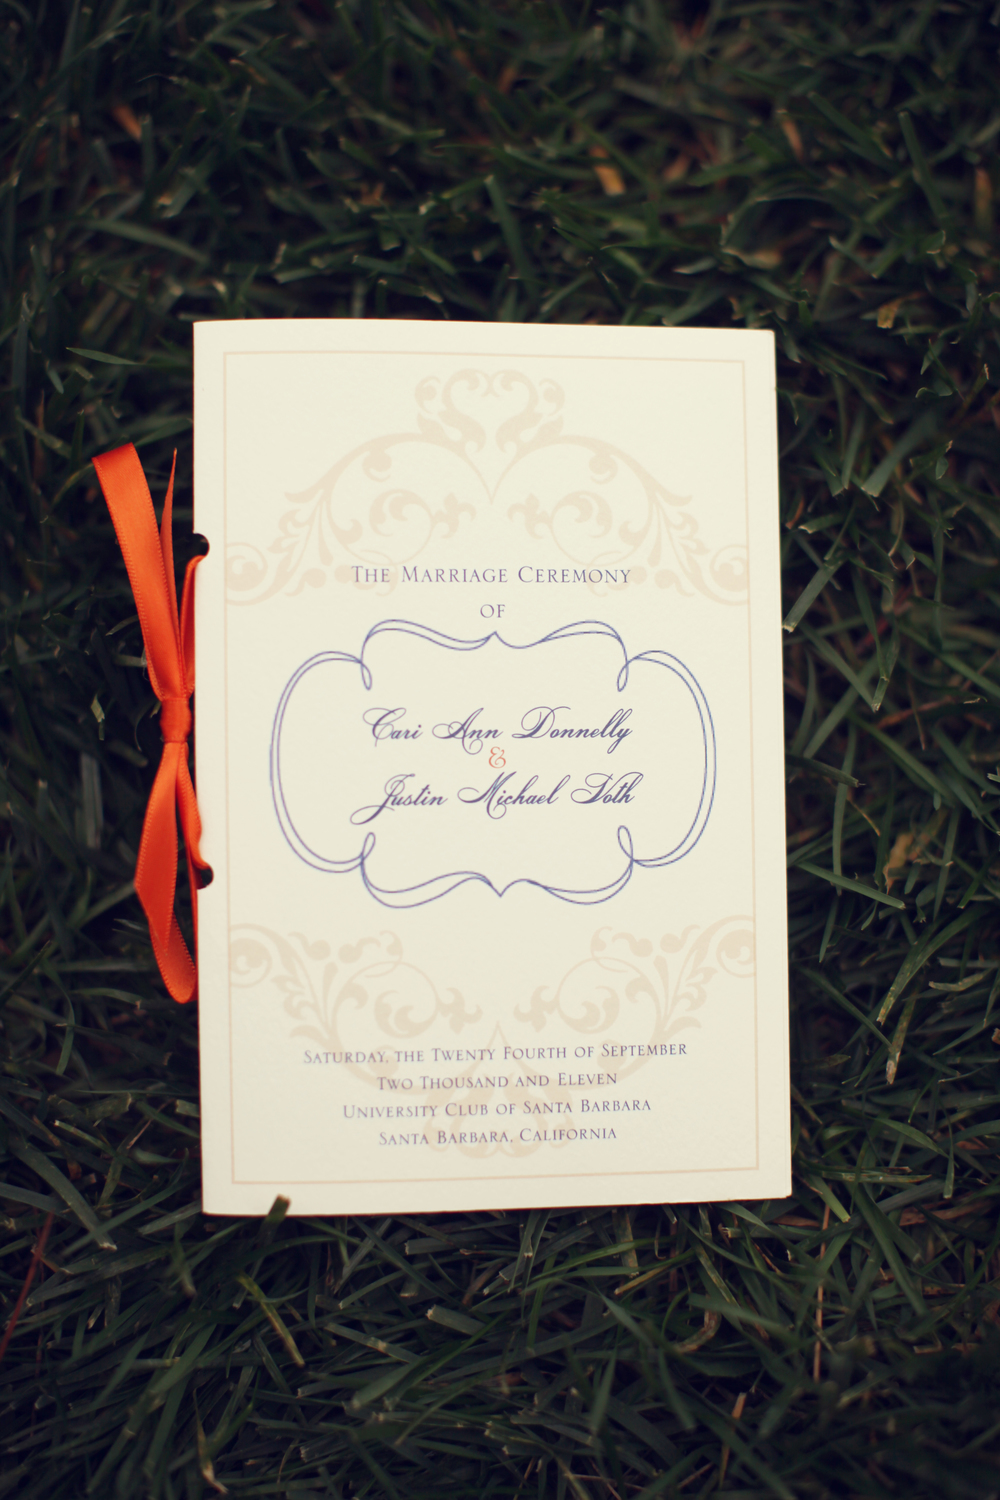 This beautiful program with a pop of color in the ribbon was perfect for this Santa Barbara ceremony. For more images from this wedding, click here.